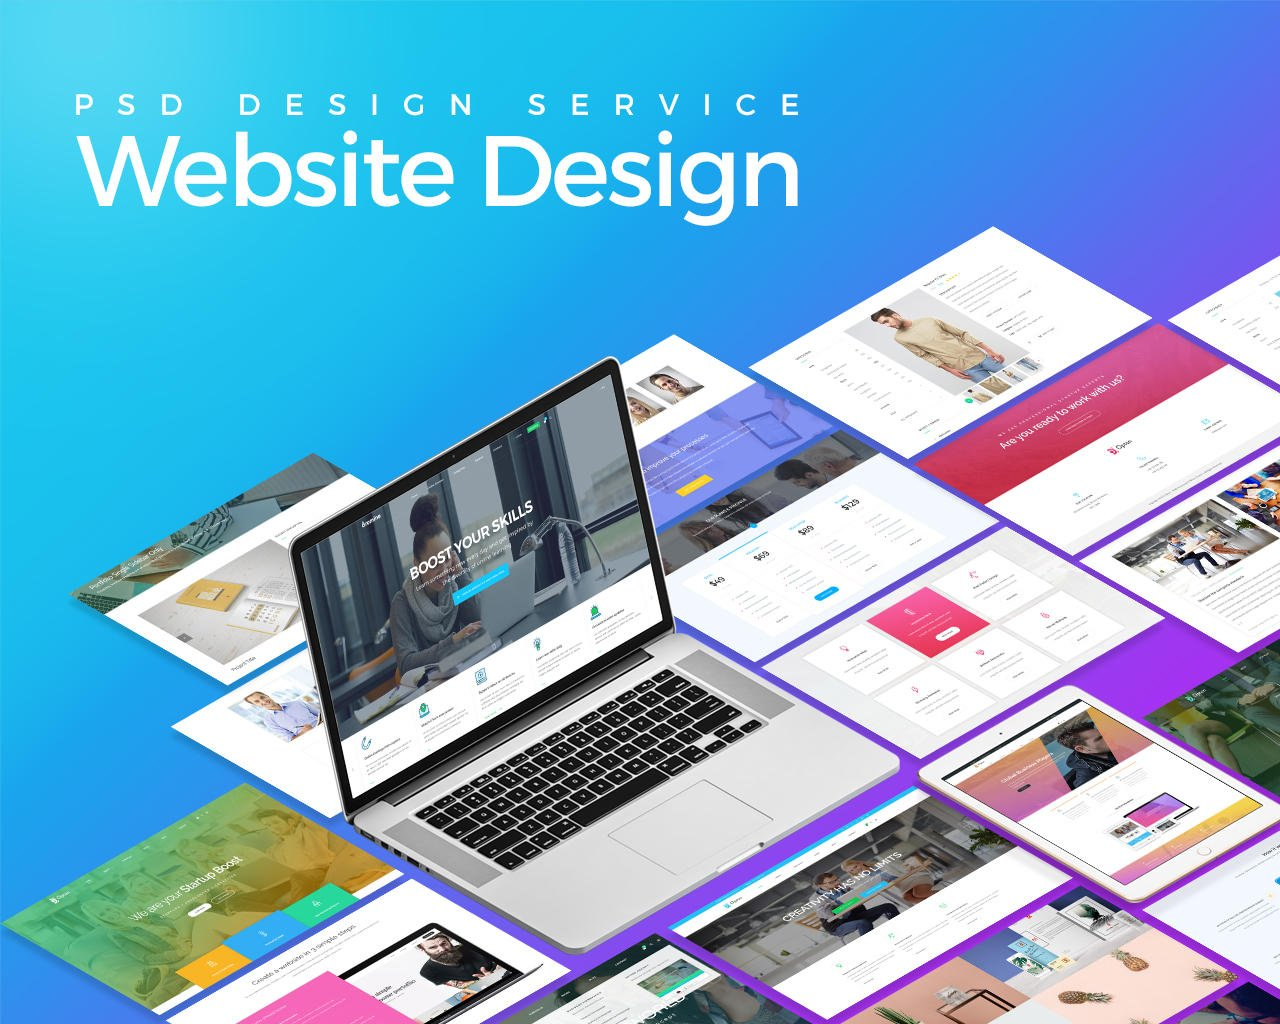 PSD Website Design Service by KL-Webmedia - 109254